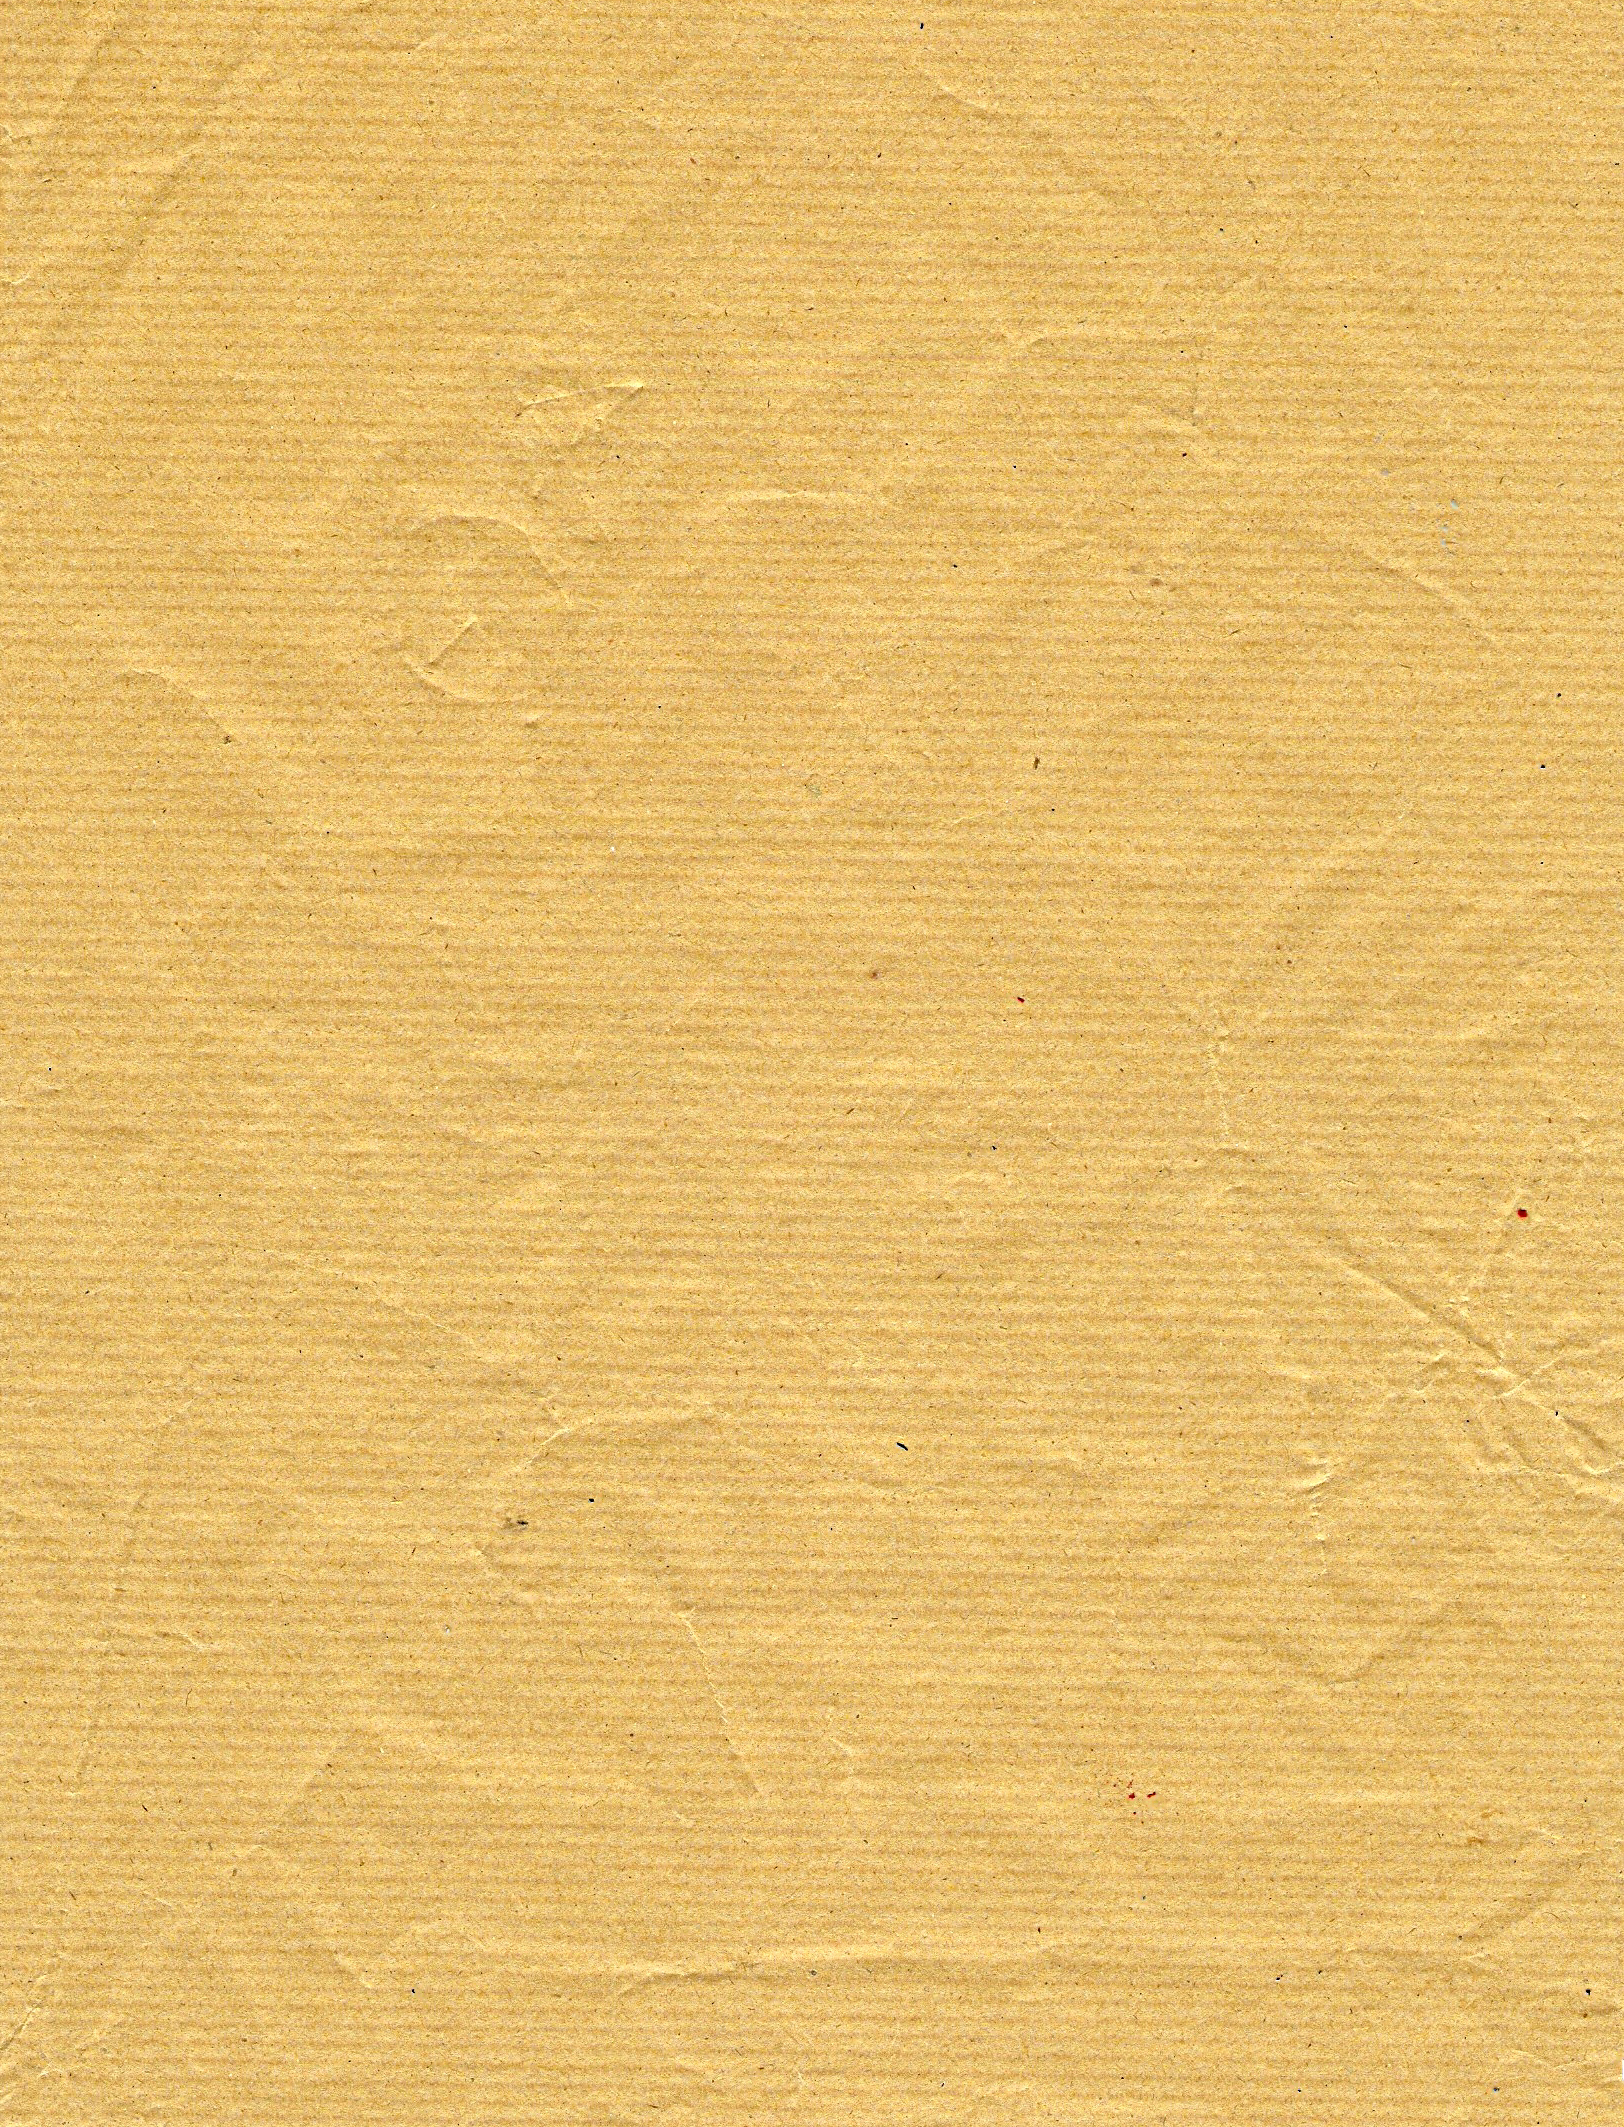 Pattern Paper Texture 2 by tapemixes-45